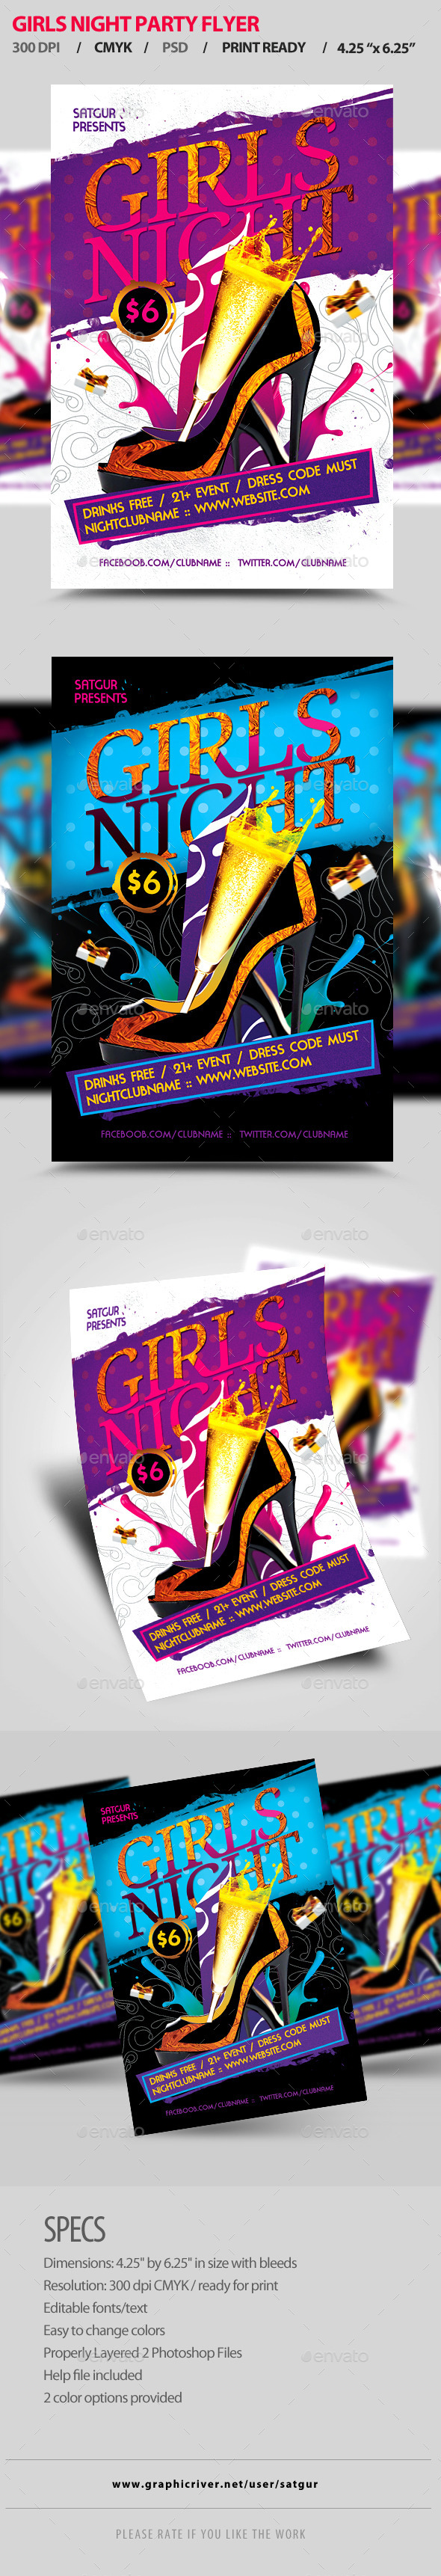 Girls Night Party Flyer V3 - Clubs & Parties Events